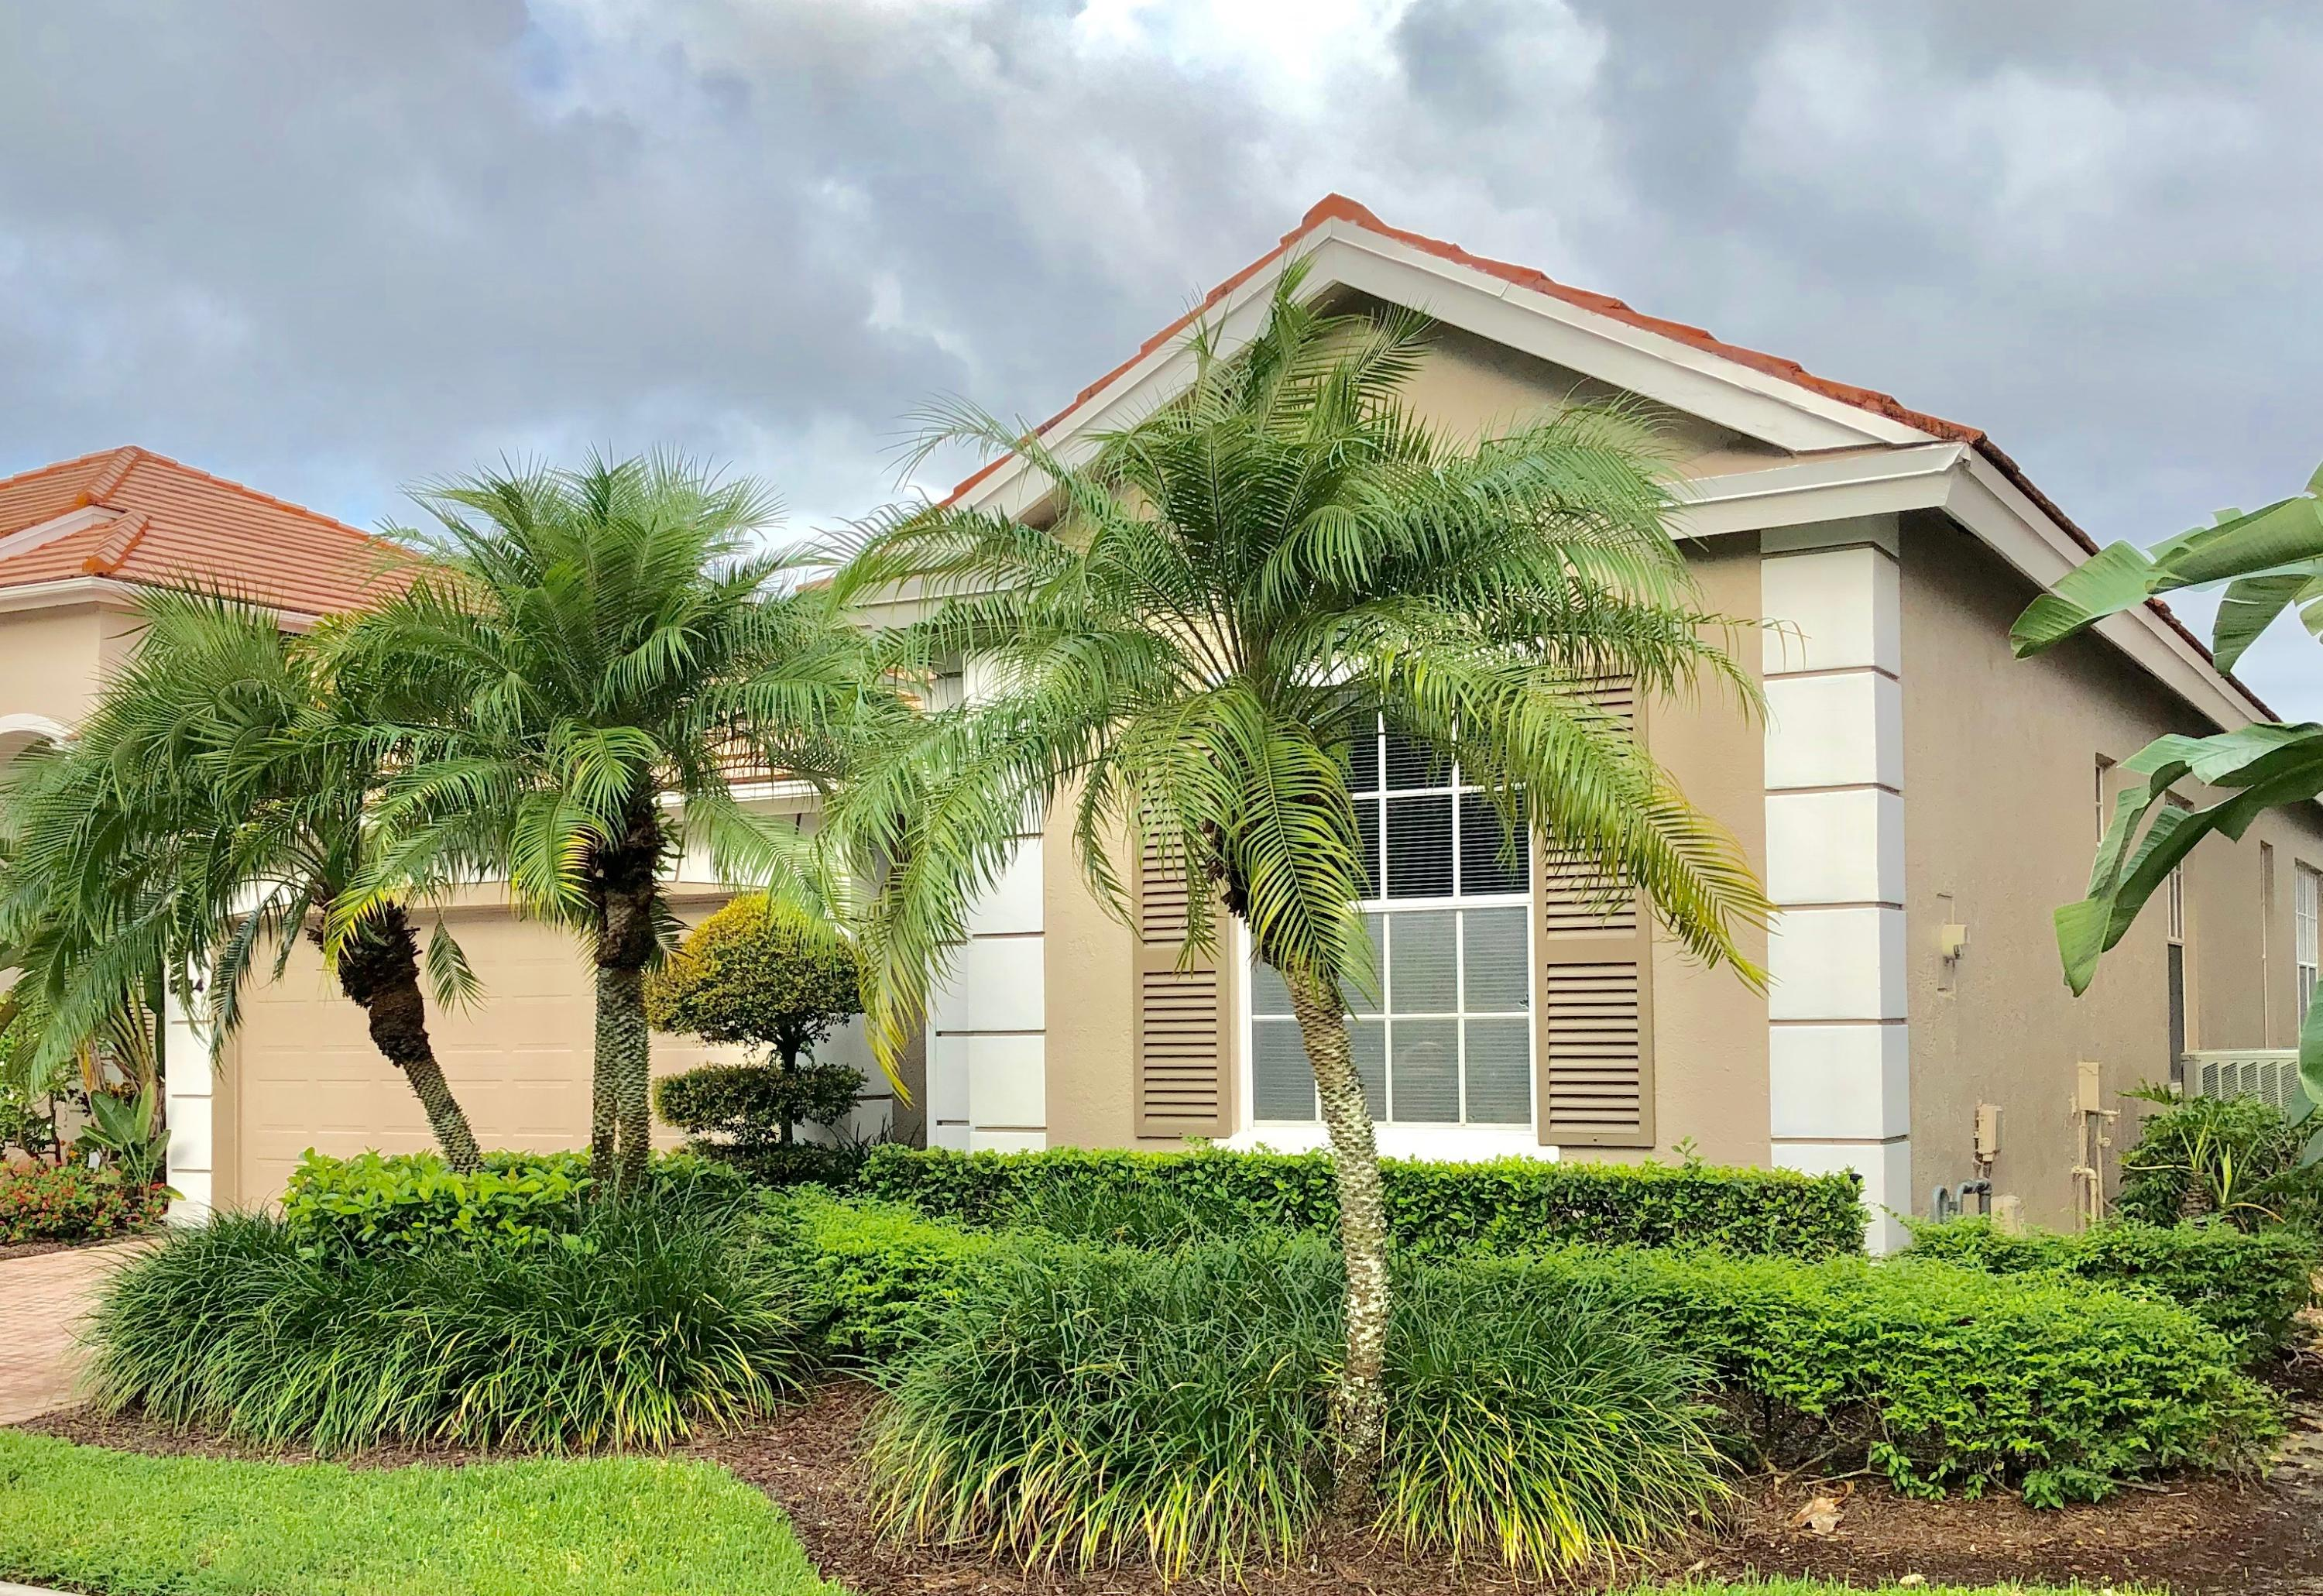 8344 Heritage Club Drive, West Palm Beach, Florida 33412, 3 Bedrooms Bedrooms, ,2 BathroomsBathrooms,A,Single family,Heritage Club,RX-10561368